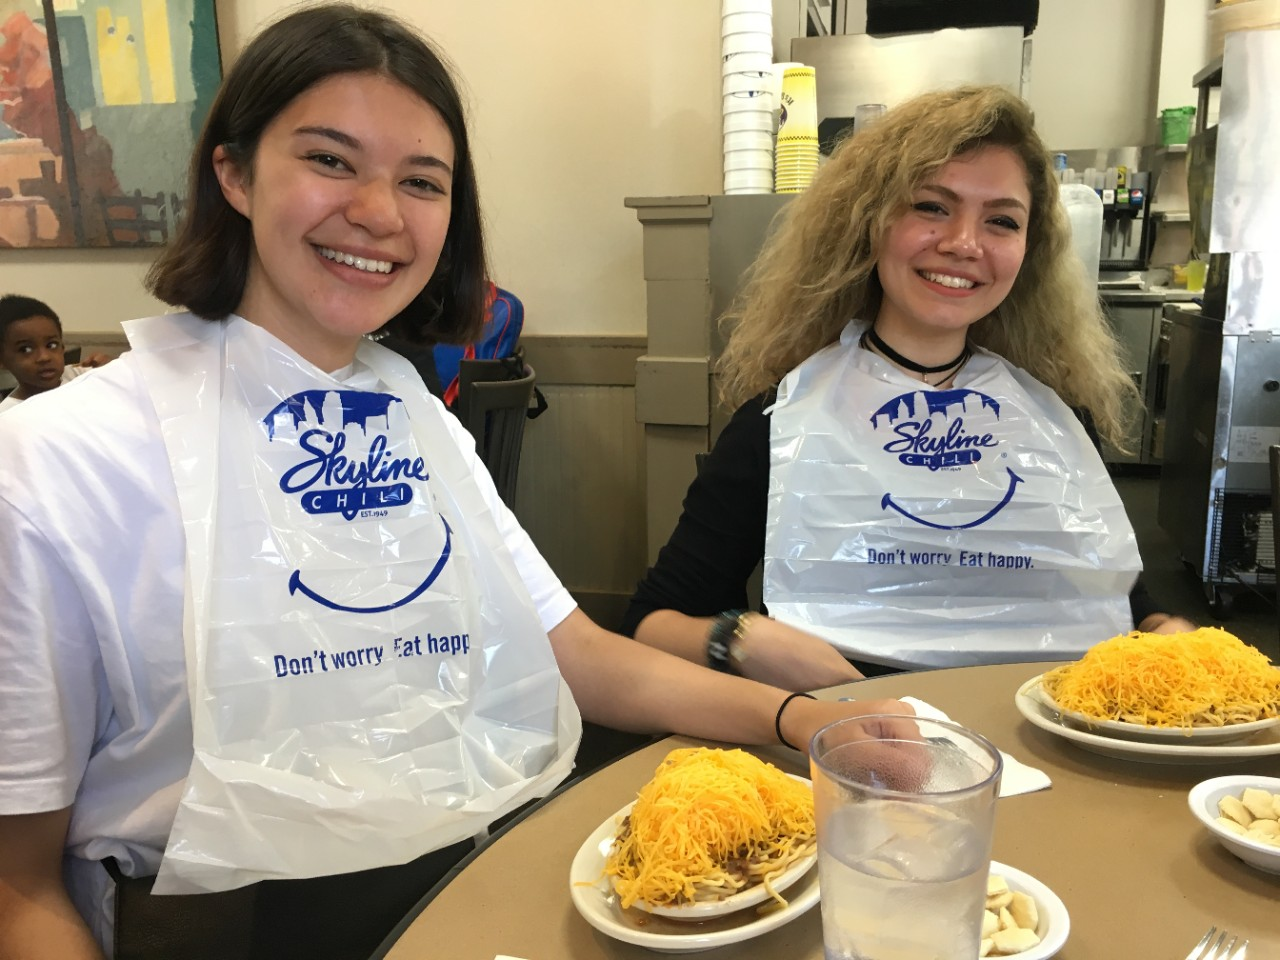 Two young women sit at a table eating Cincinnati chili